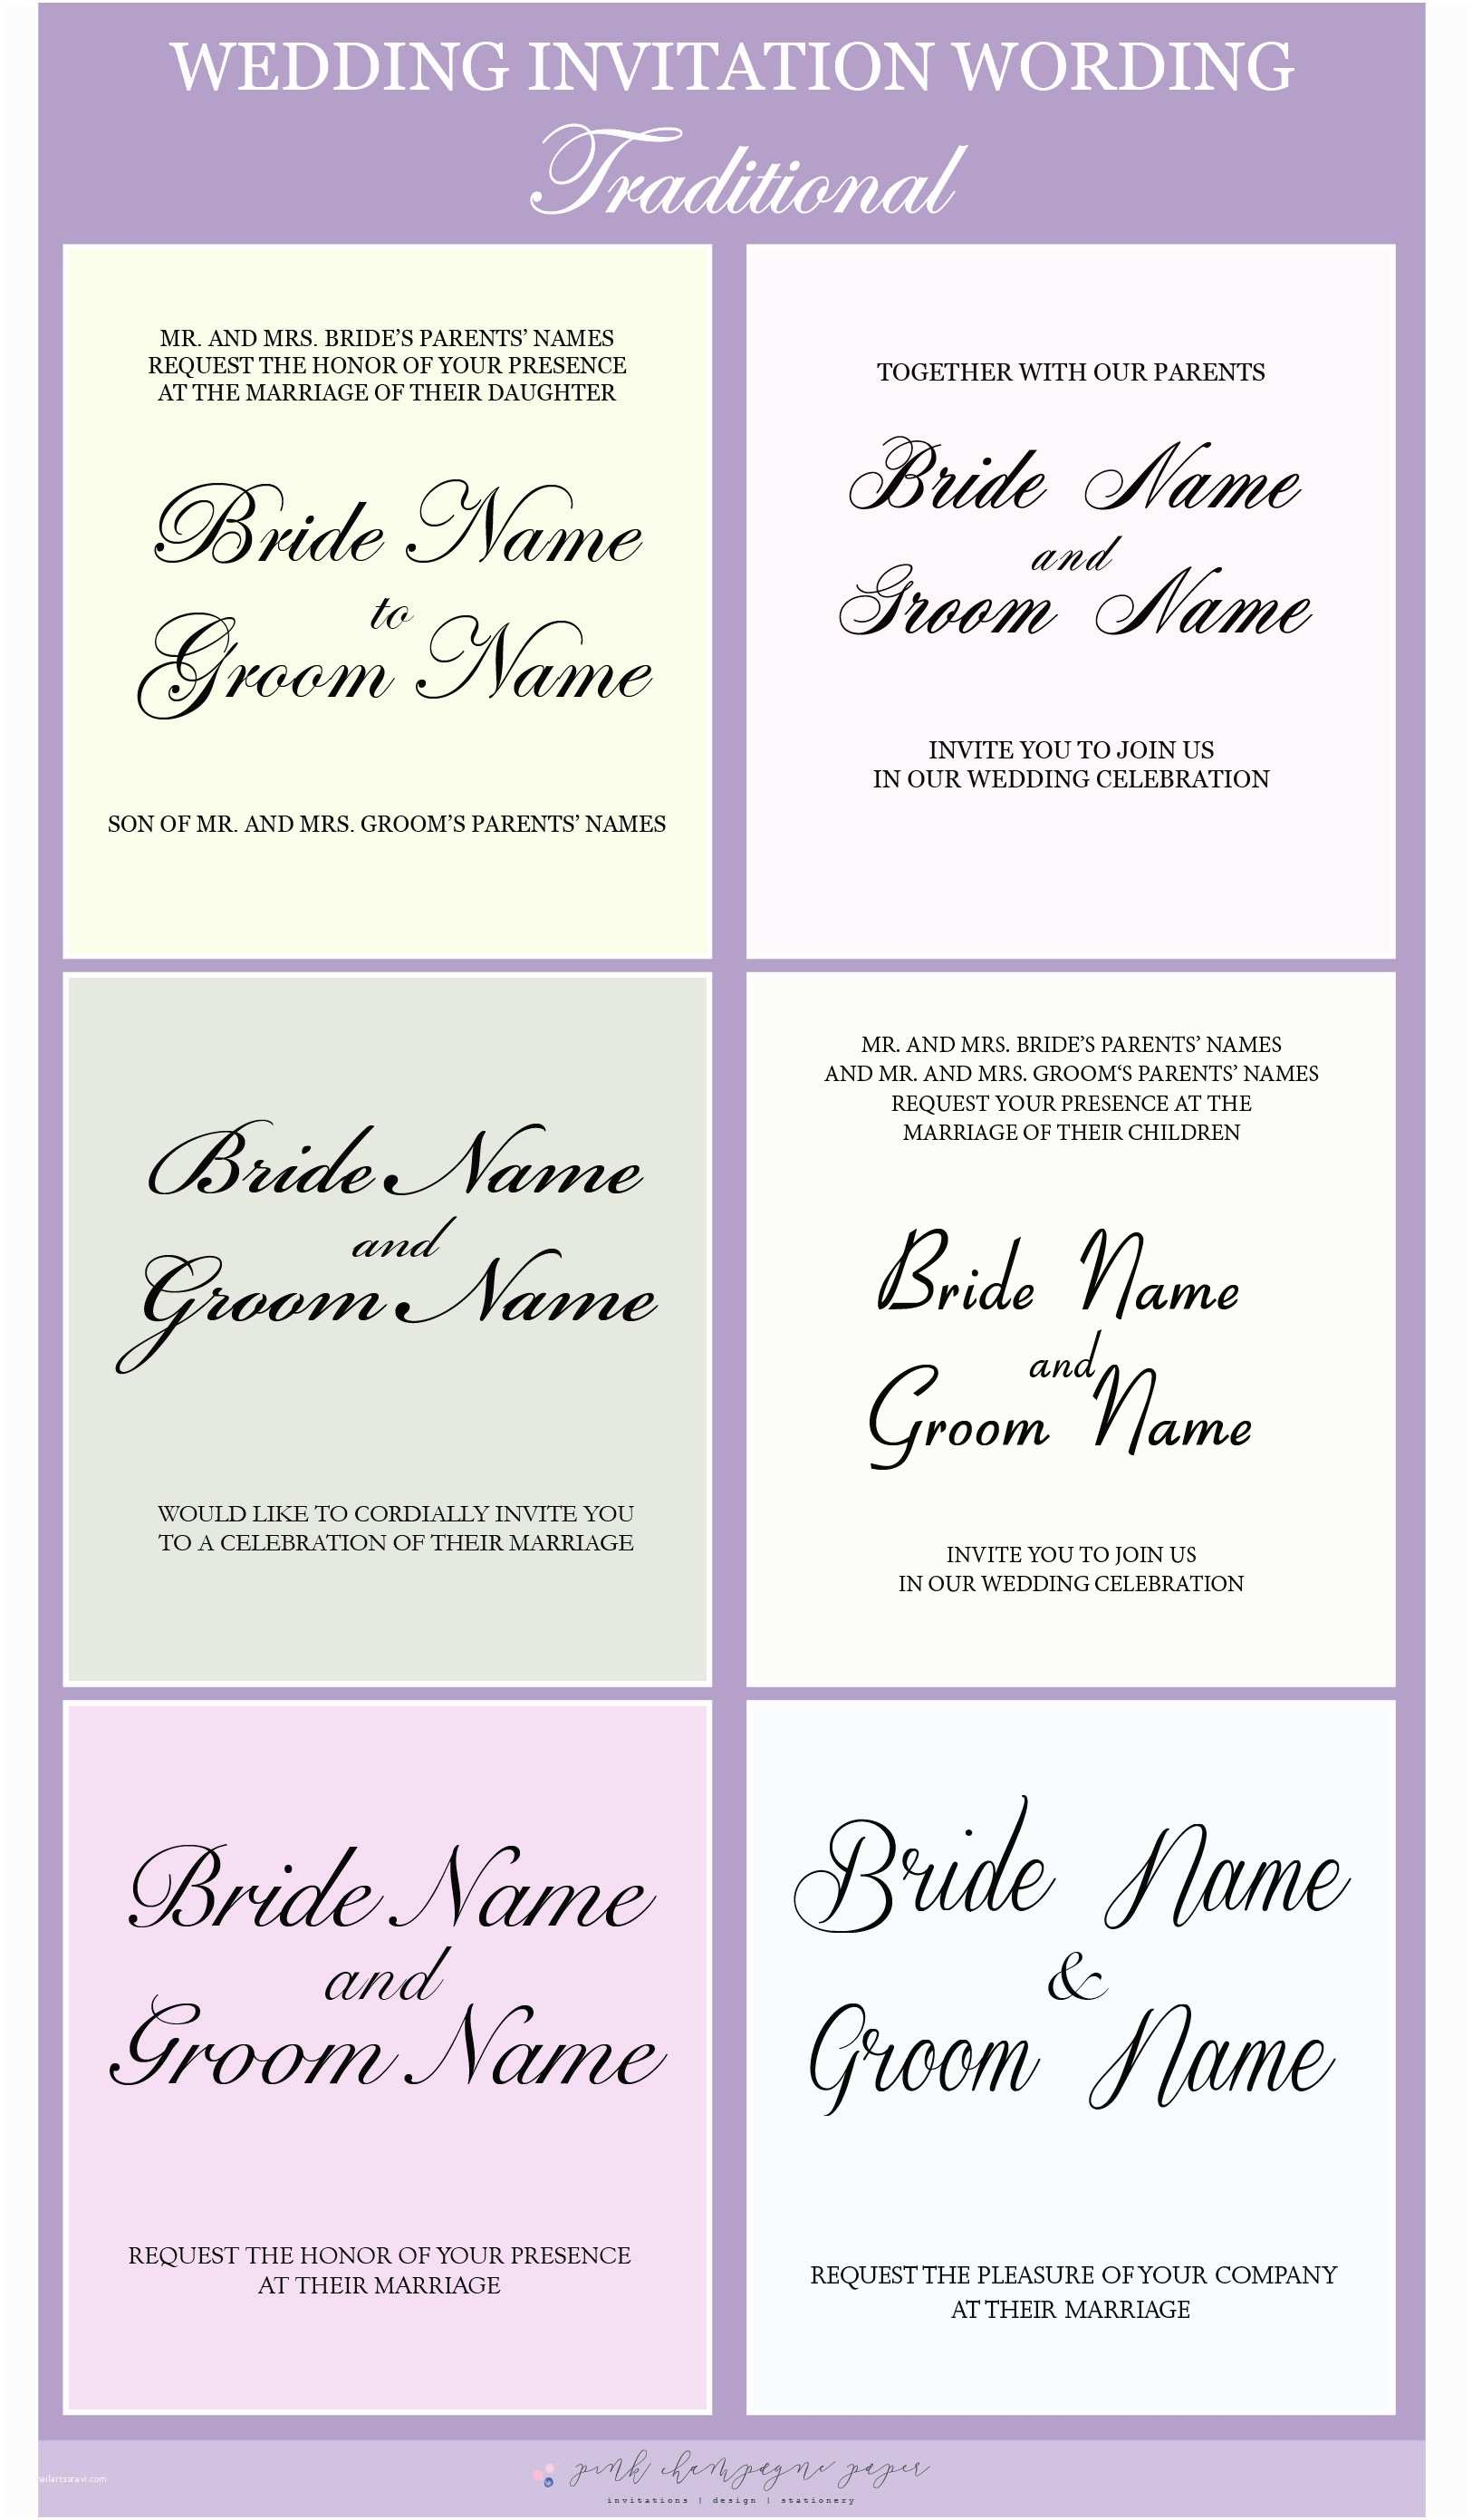 Wedding Invitation Both Parents Wording Samples Advice Tips Etiquette Archives